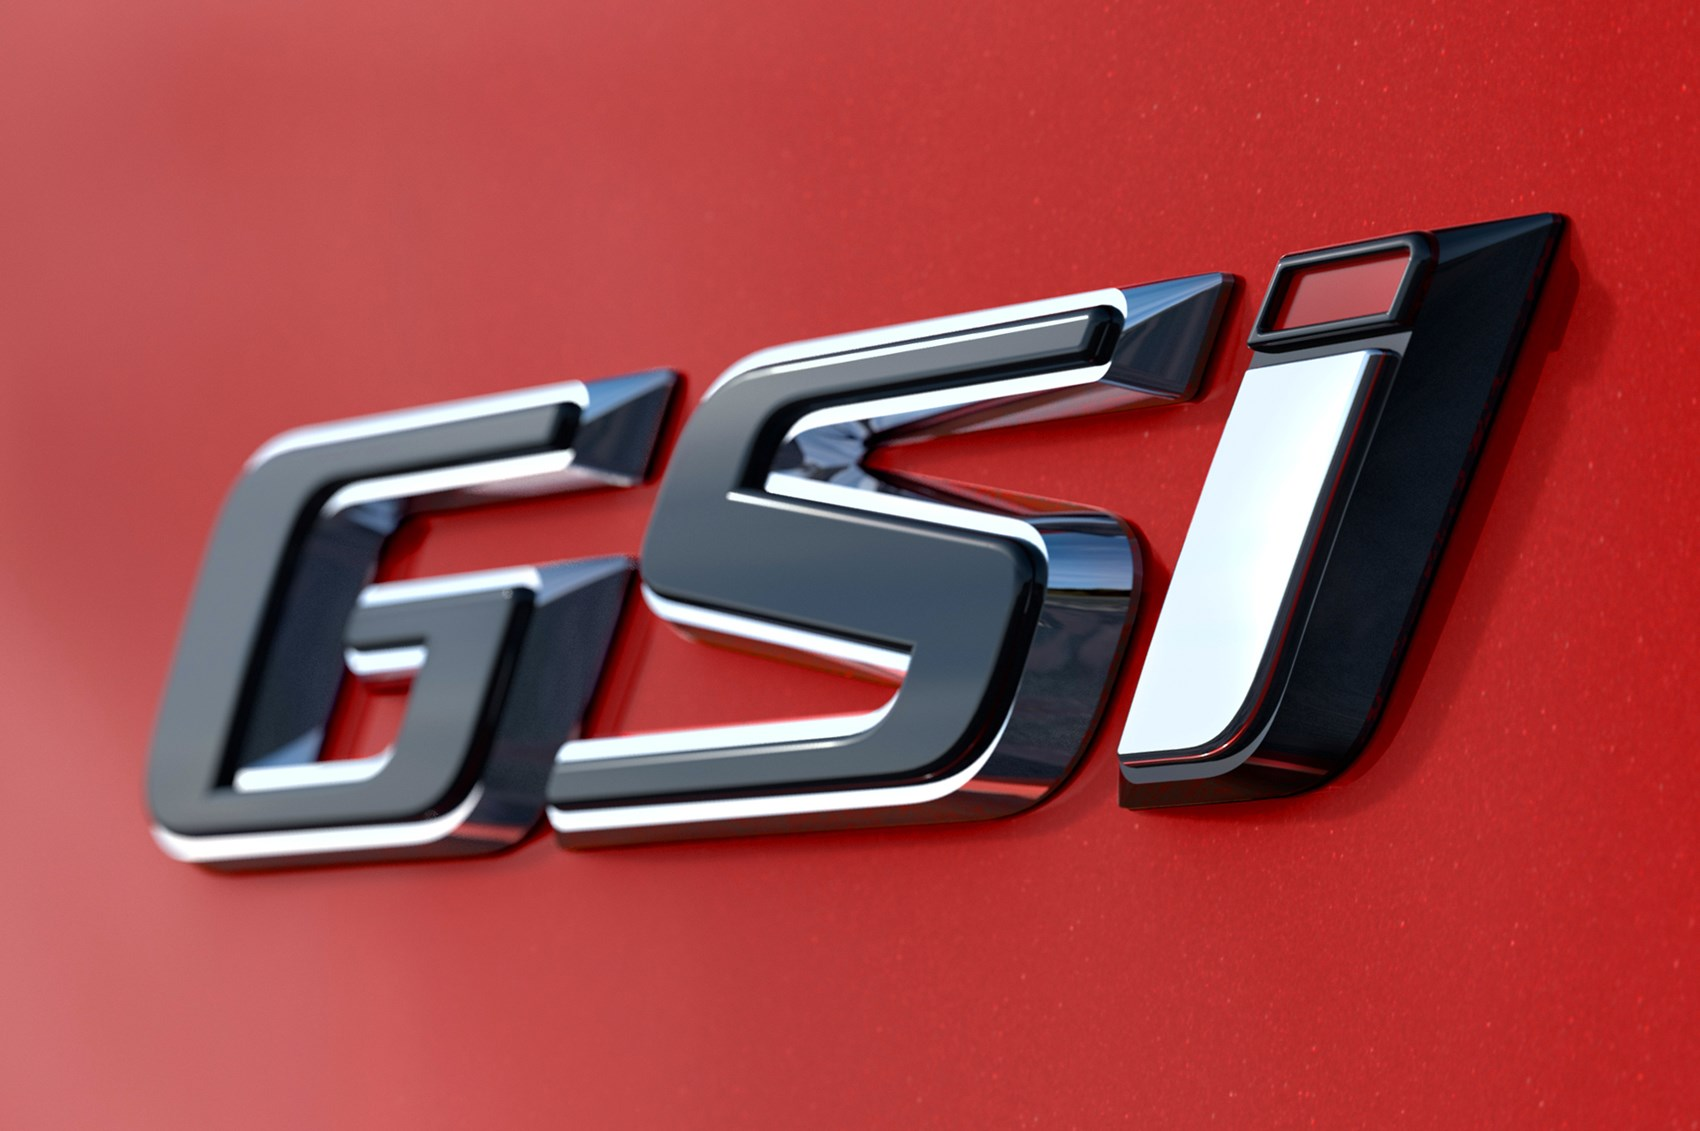 252bhp Vauxhall Insignia GSi launched with torque vectoring technology